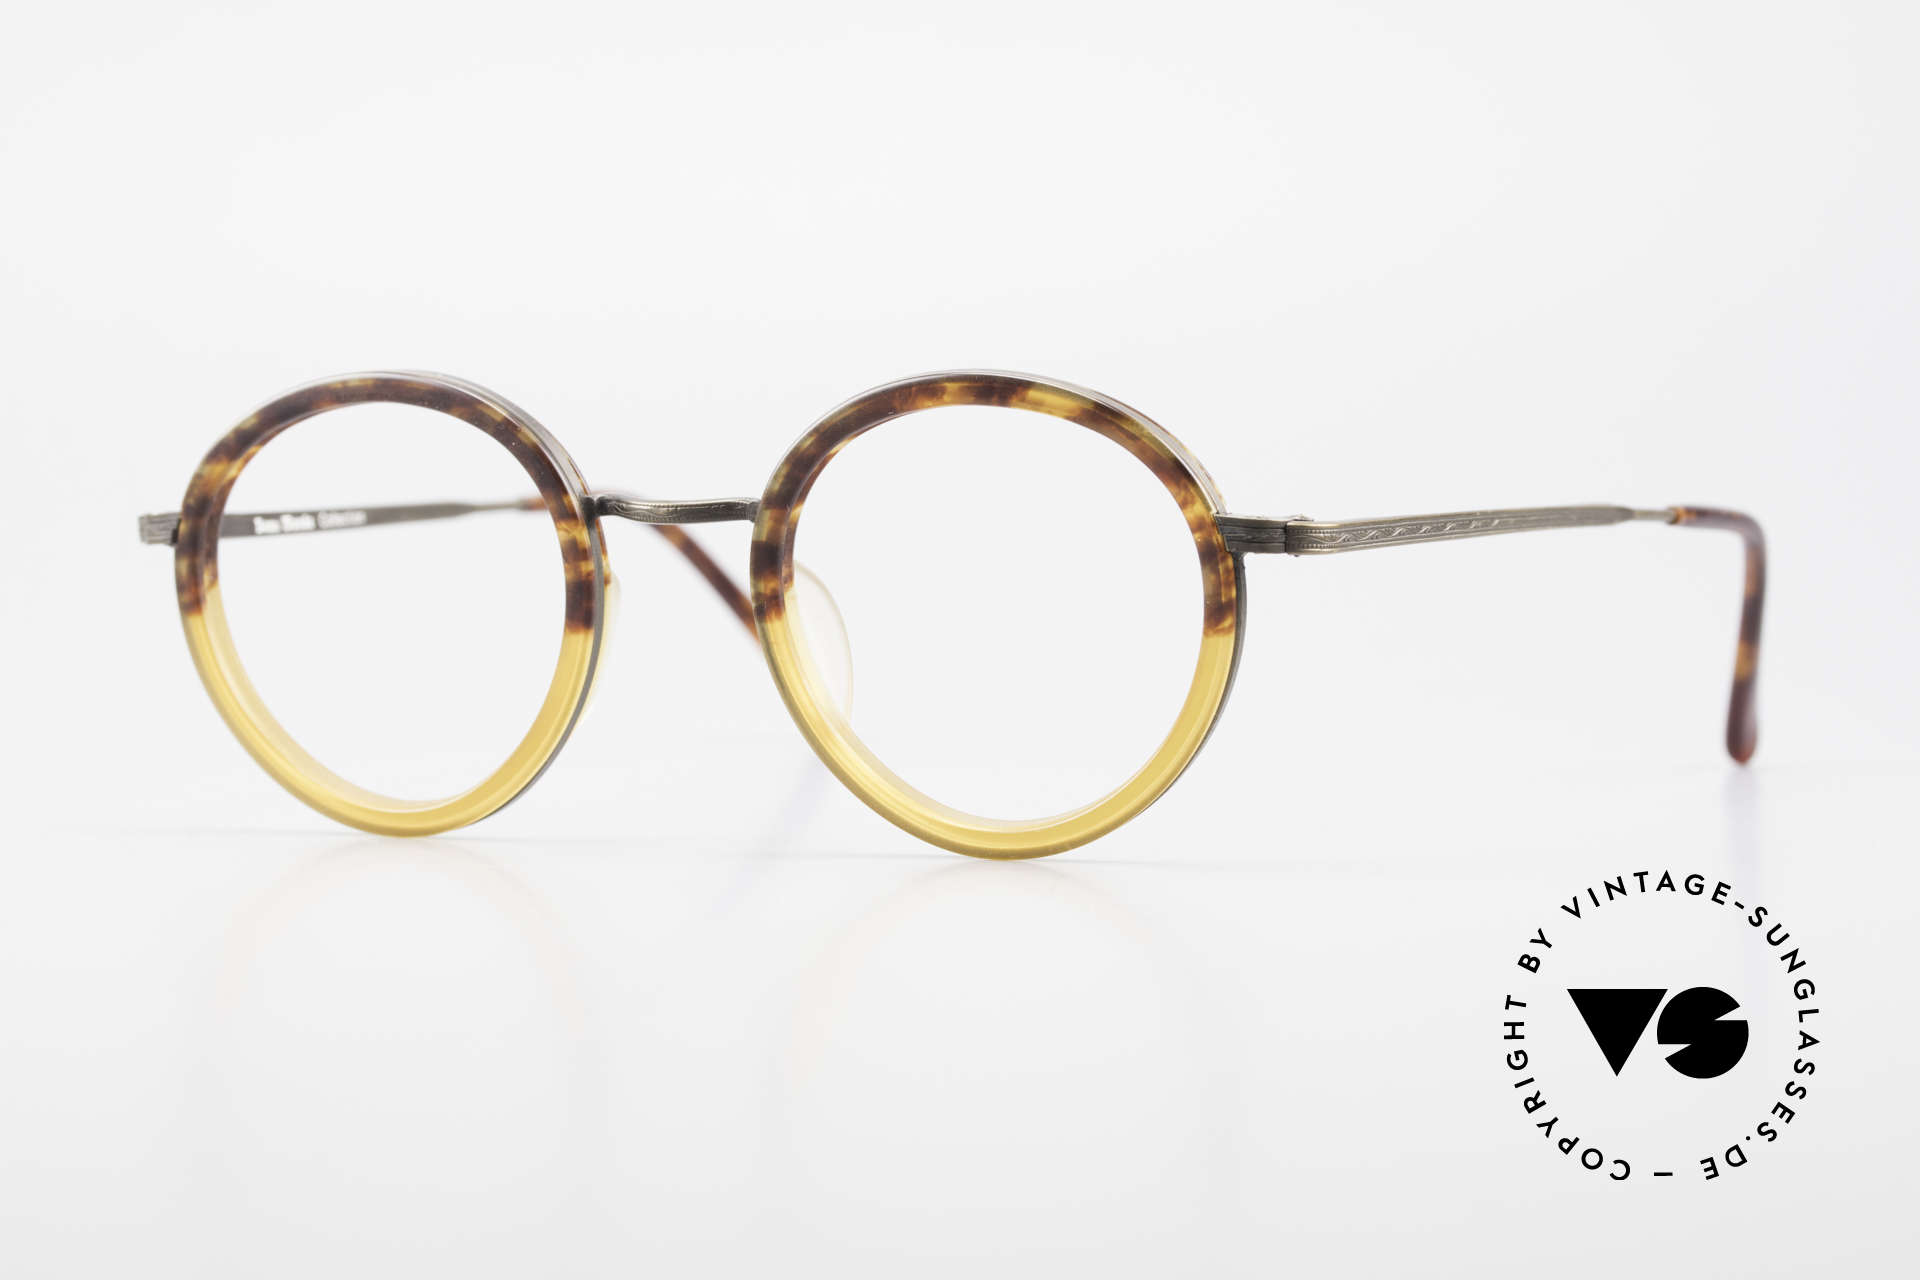 Beau Monde Rhodes Round Old Vintage Frame 90's, interesting old vintage glasses of the late 80s/early 90s, Made for Men and Women